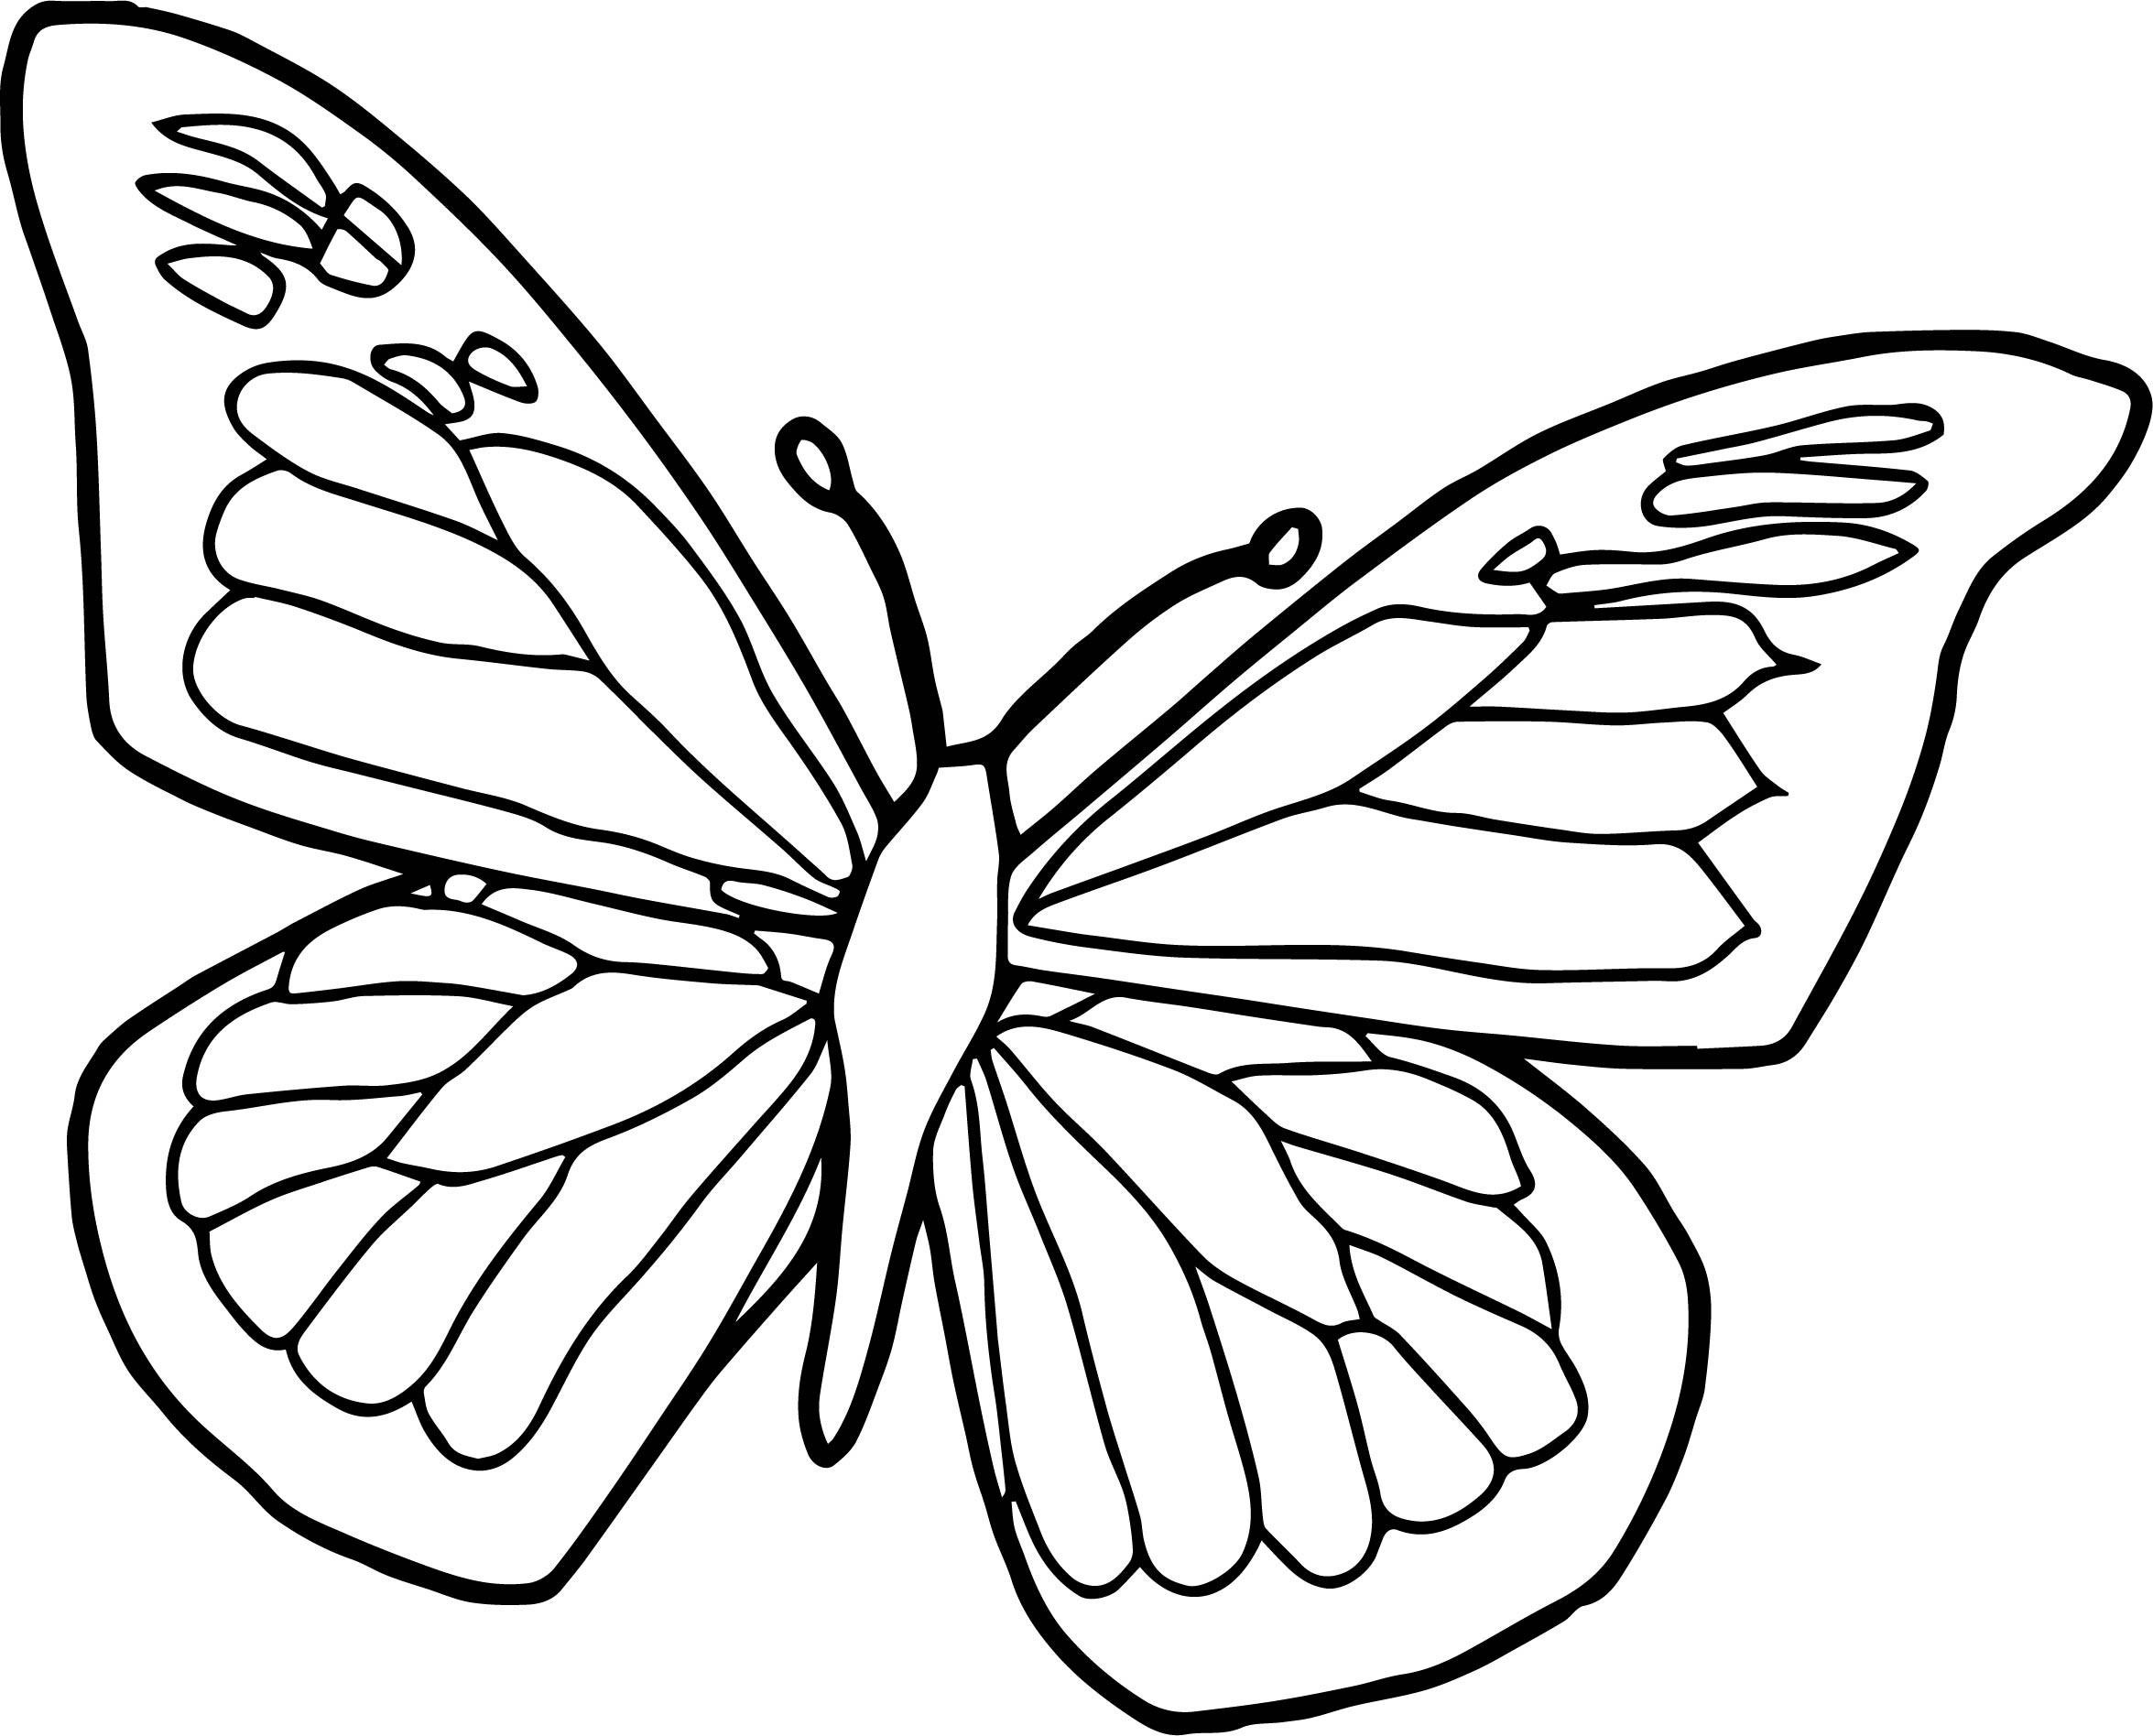 2351x1896 Butterfly Coloring Page Elegant Blue Black Butterfly Coloring Page